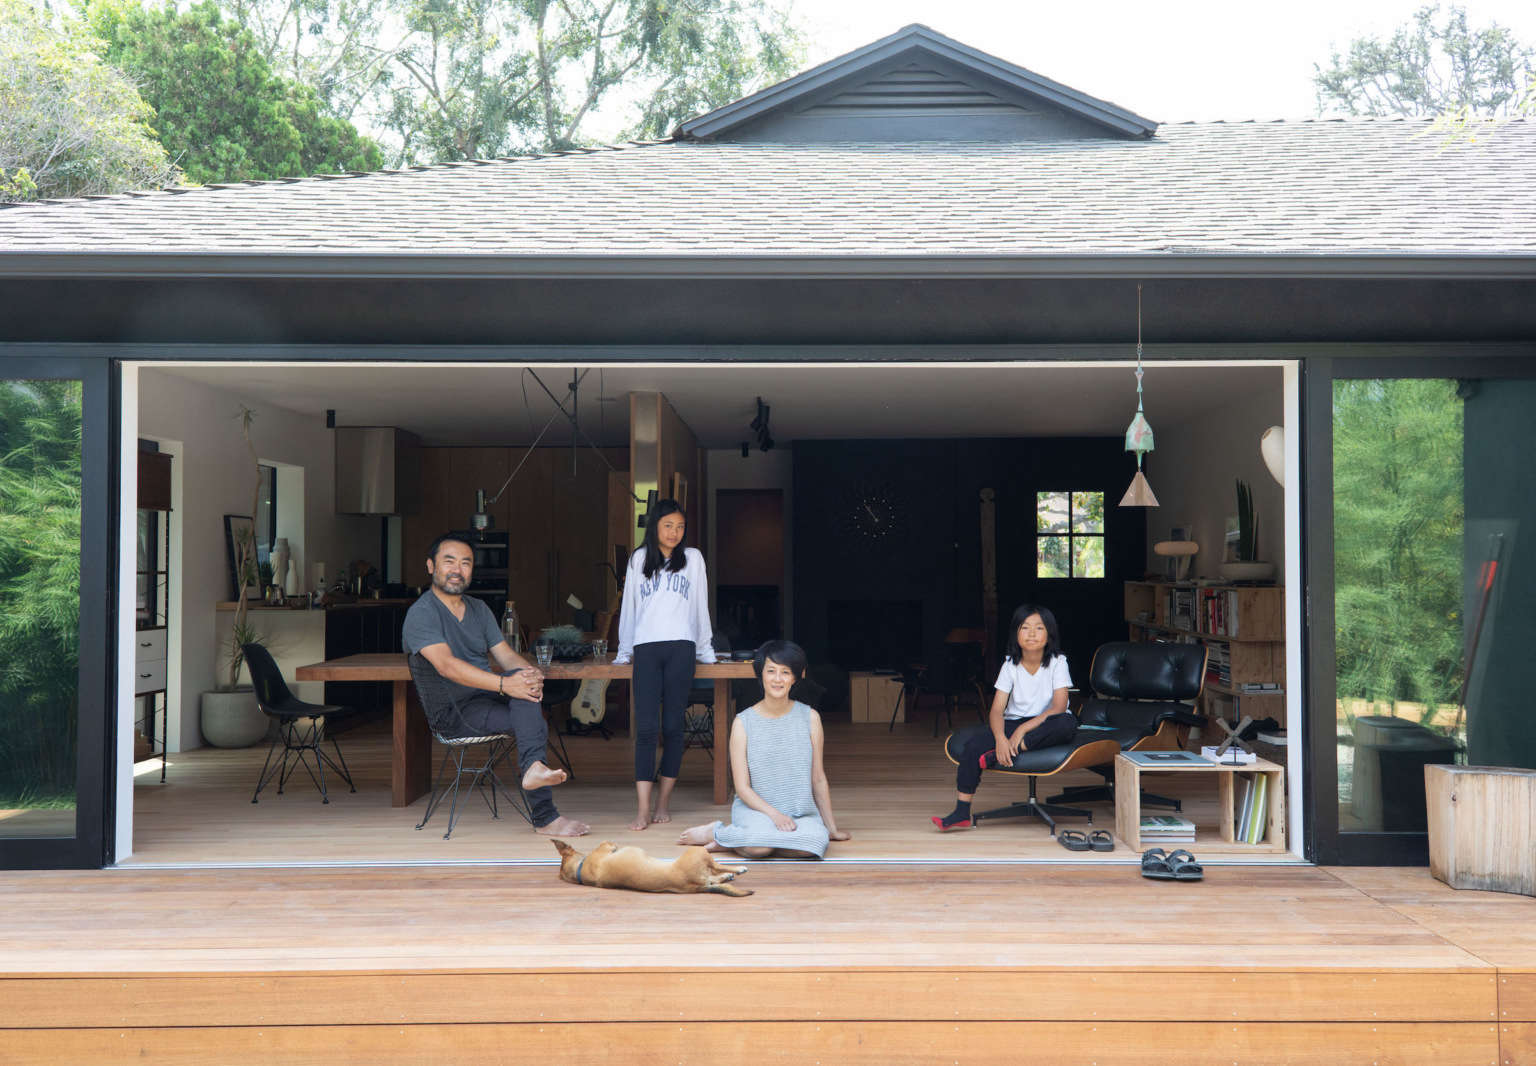 LA Noir: Architect Takashi Yanai's Humble-Chic Bungalow